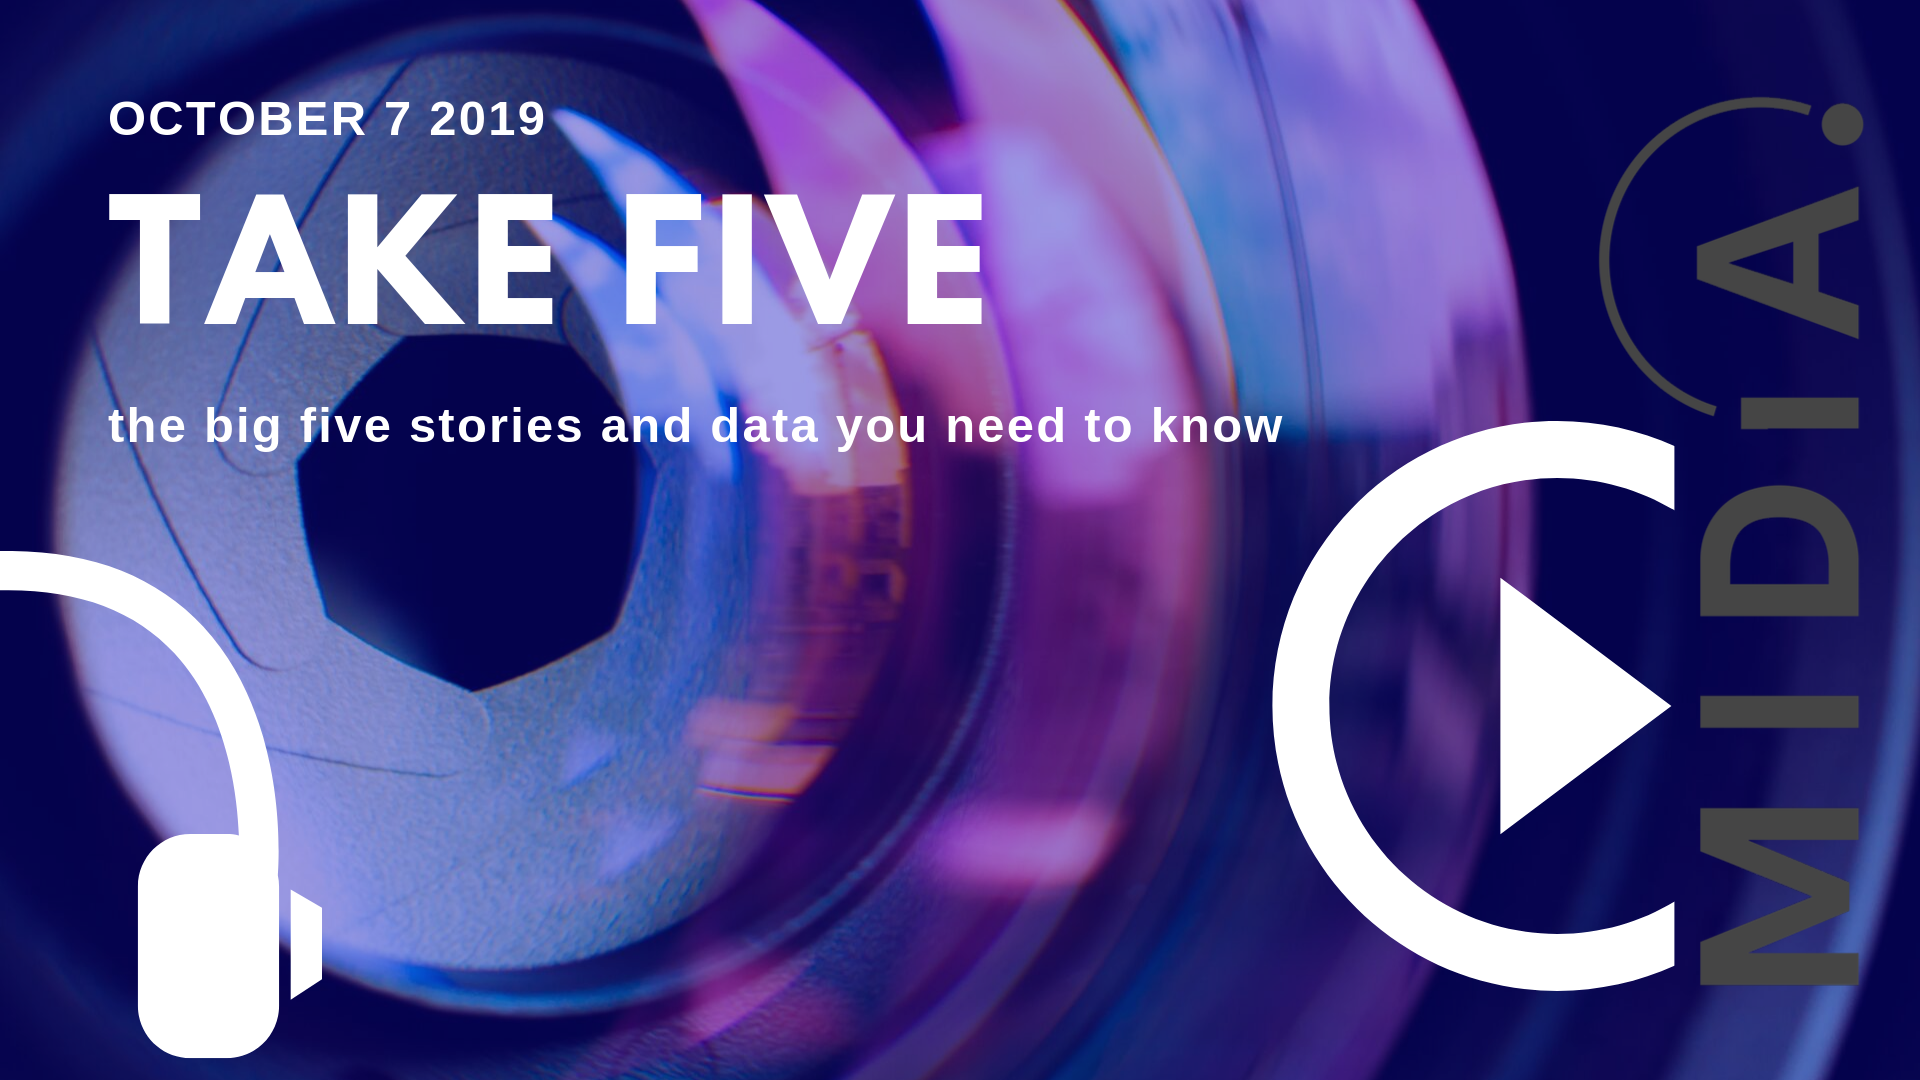 Cover image for Take Five (the big five stories and data you need to know) October 7th 2019